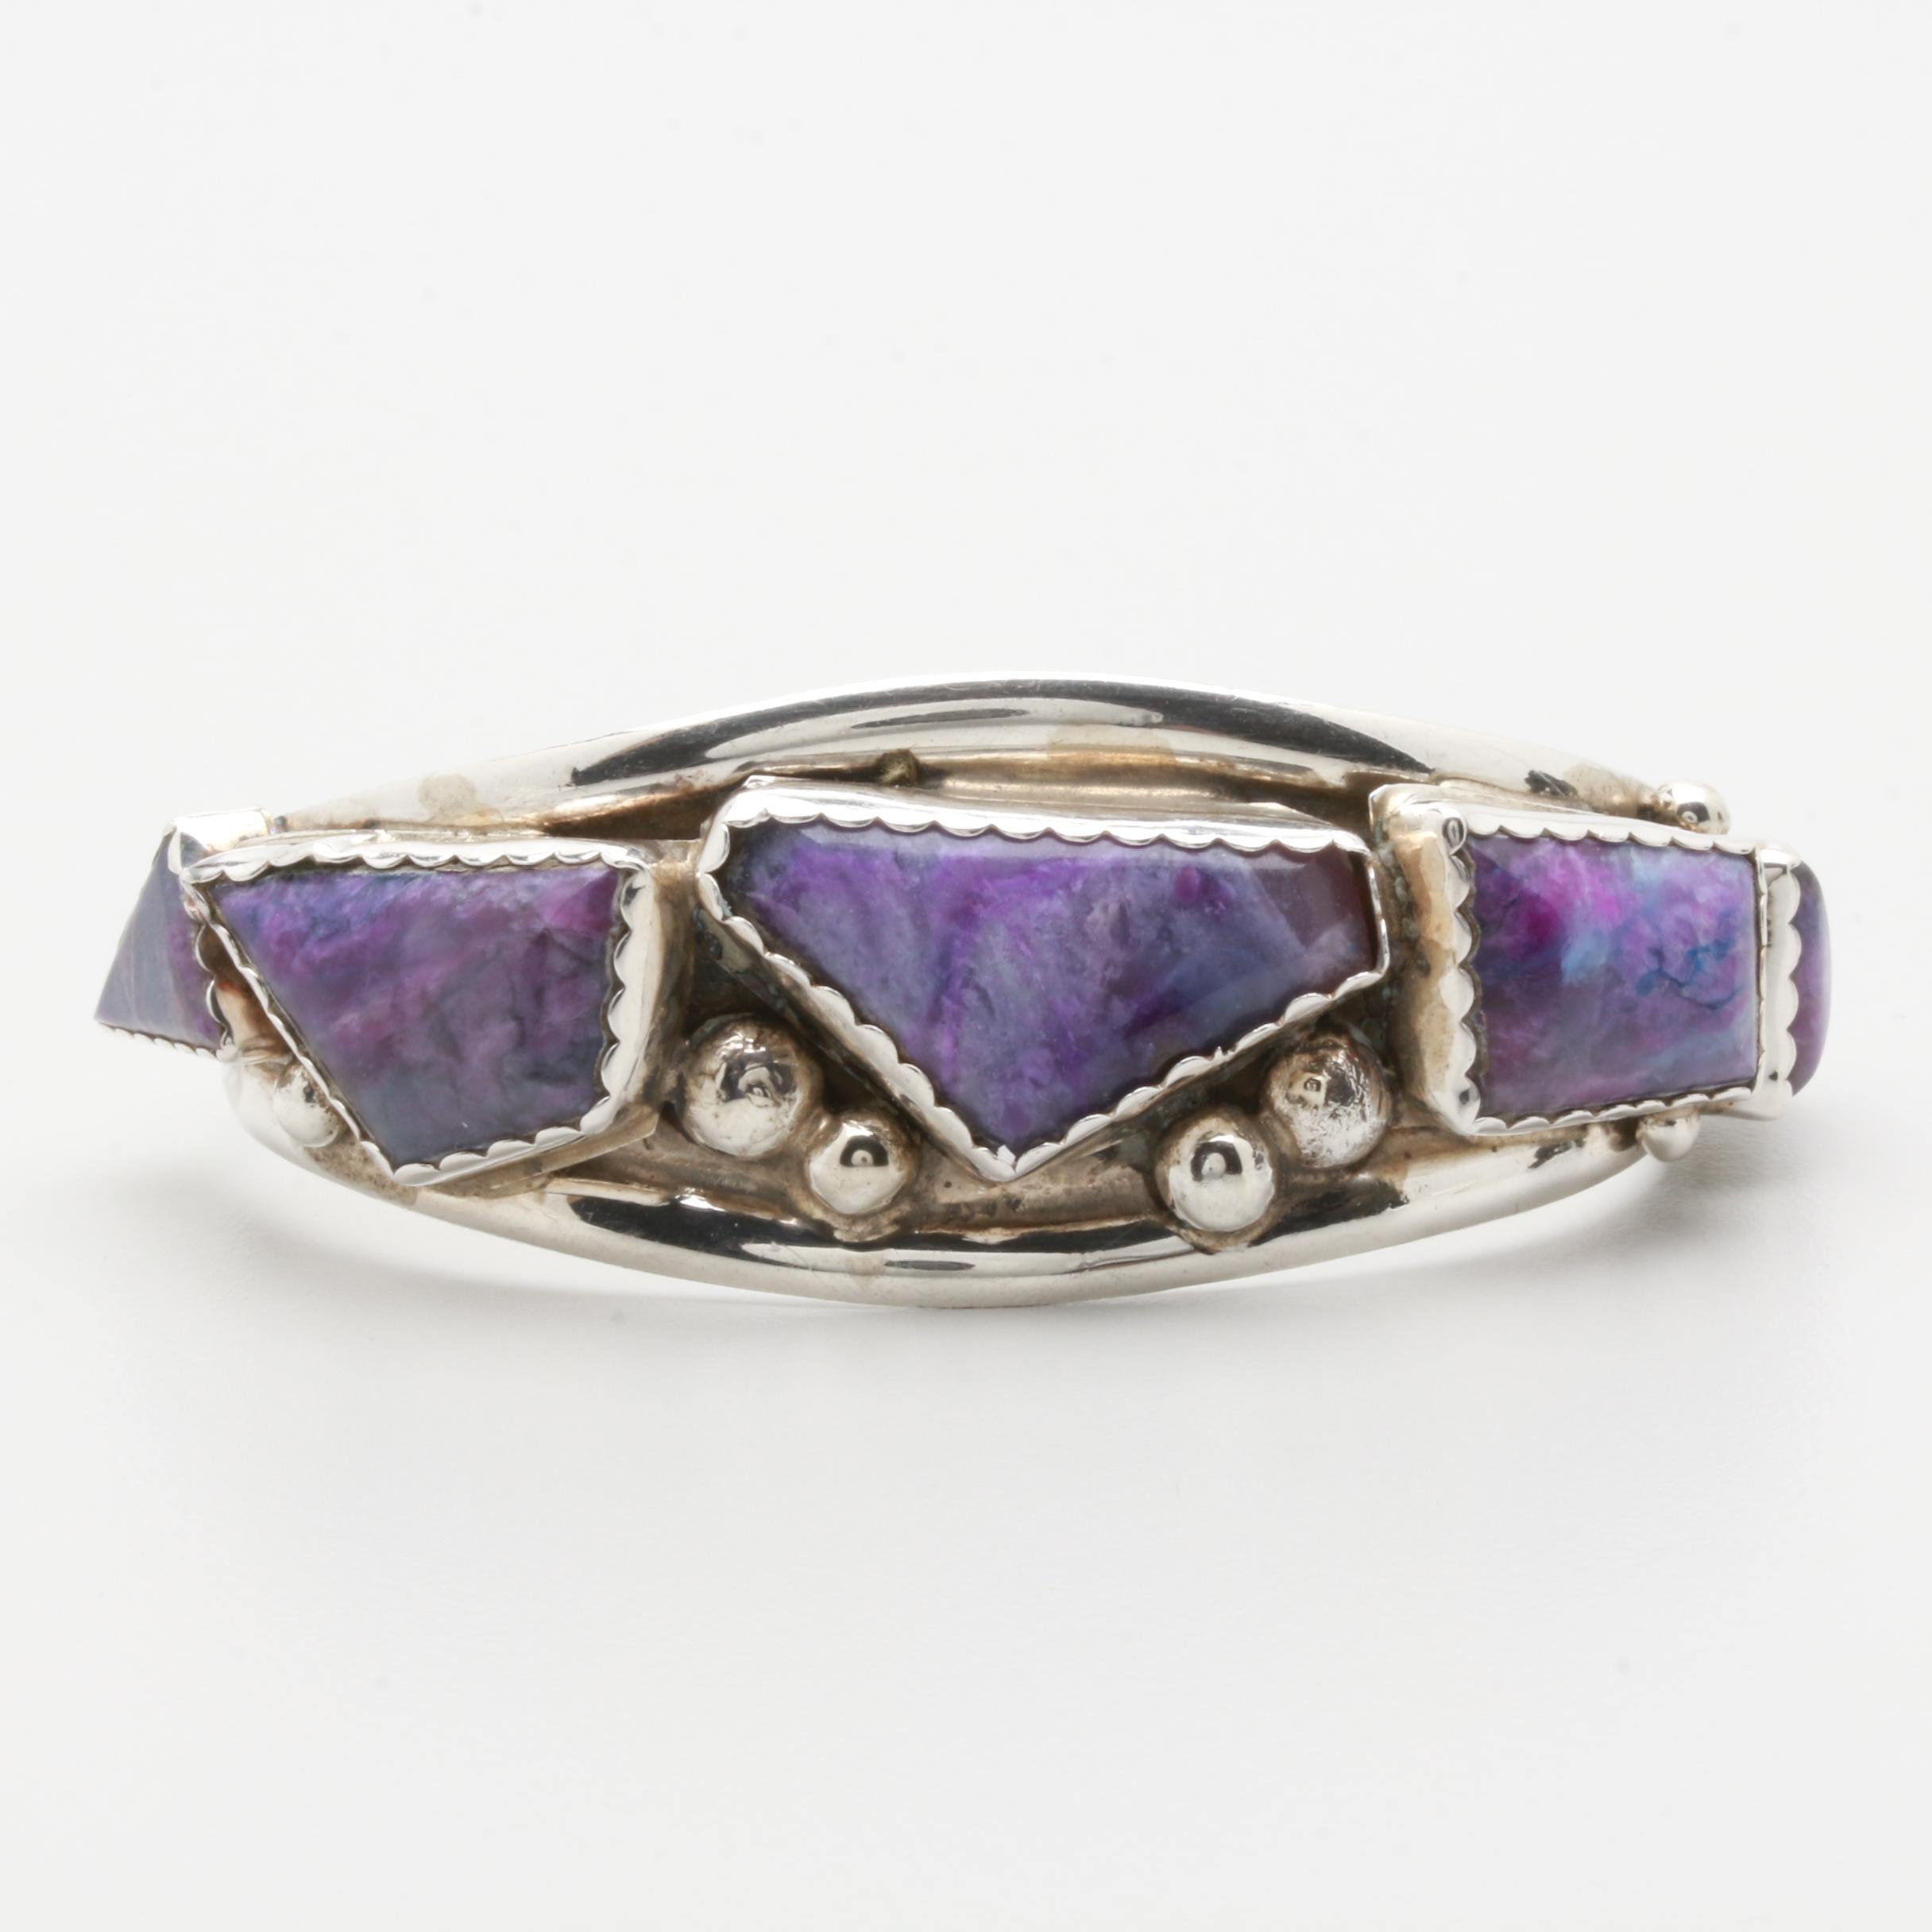 Eric & C. Fierro Navajo Diné Sterling Silver Sugilite in Quartz Cuff Bangle